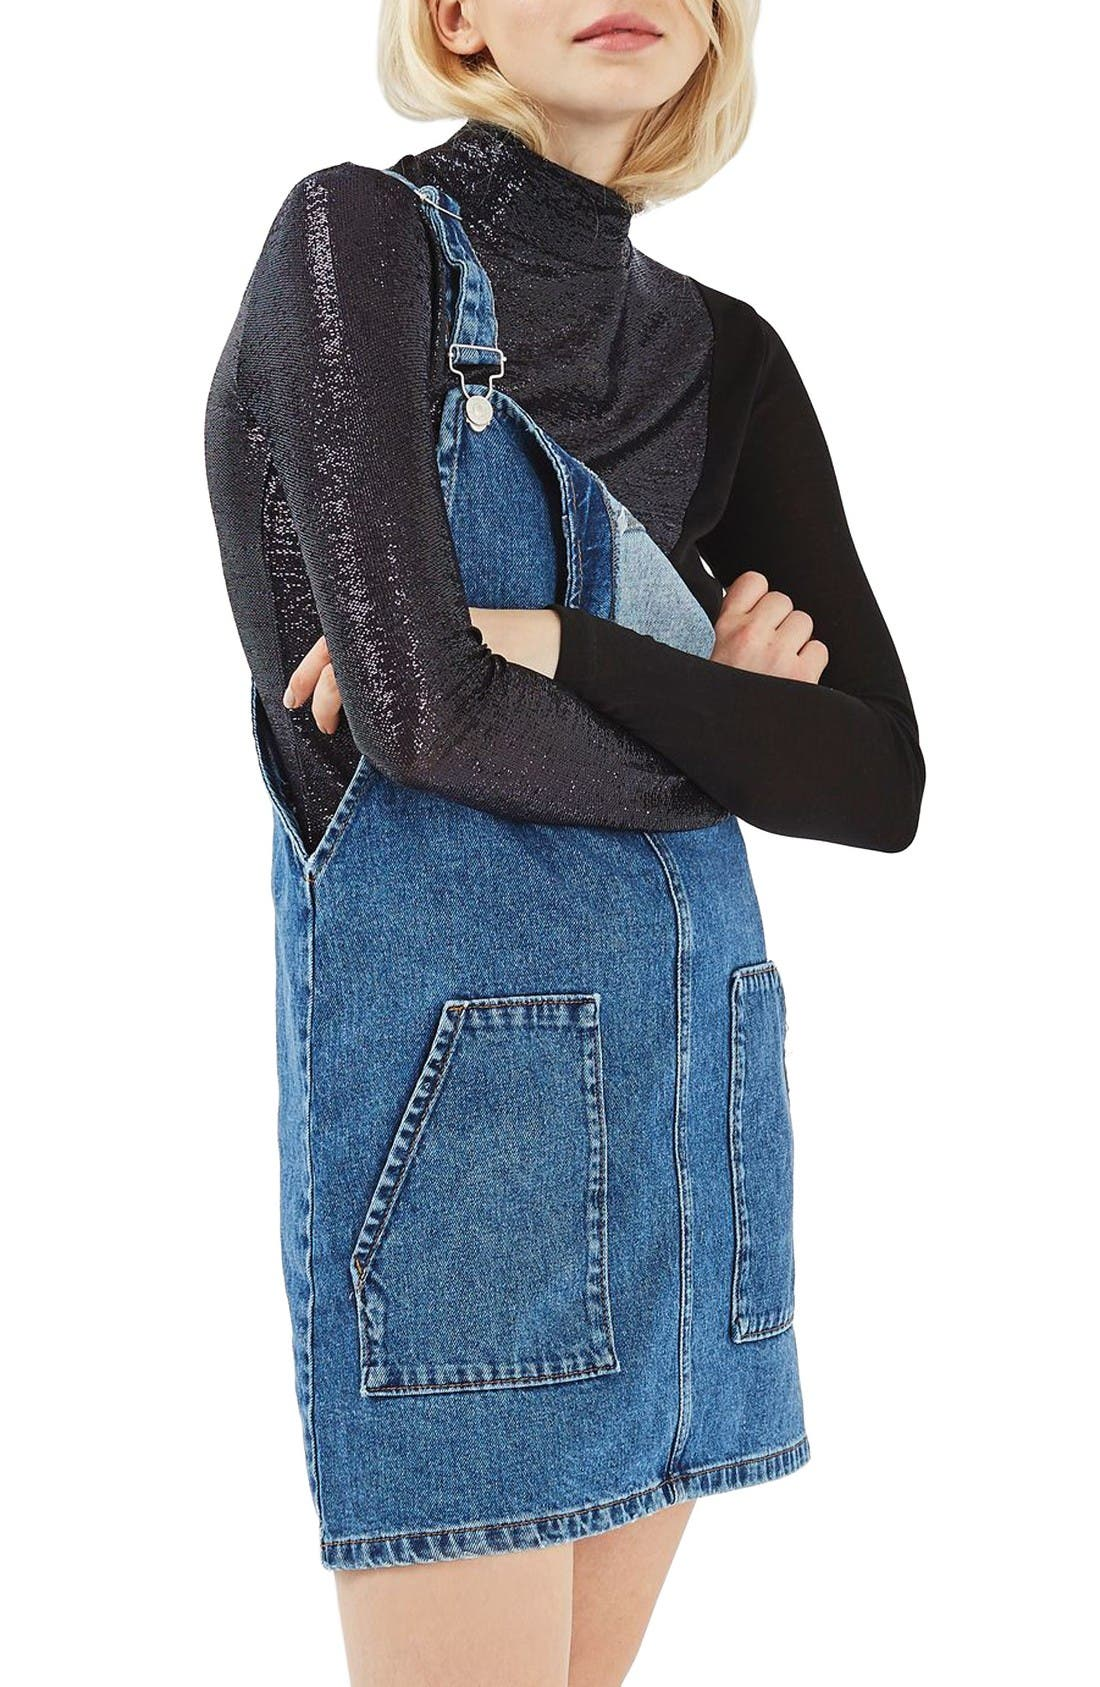 Alternate Image 1 Selected - Topshop Denim Pinafore Dress (Regular & Petite)